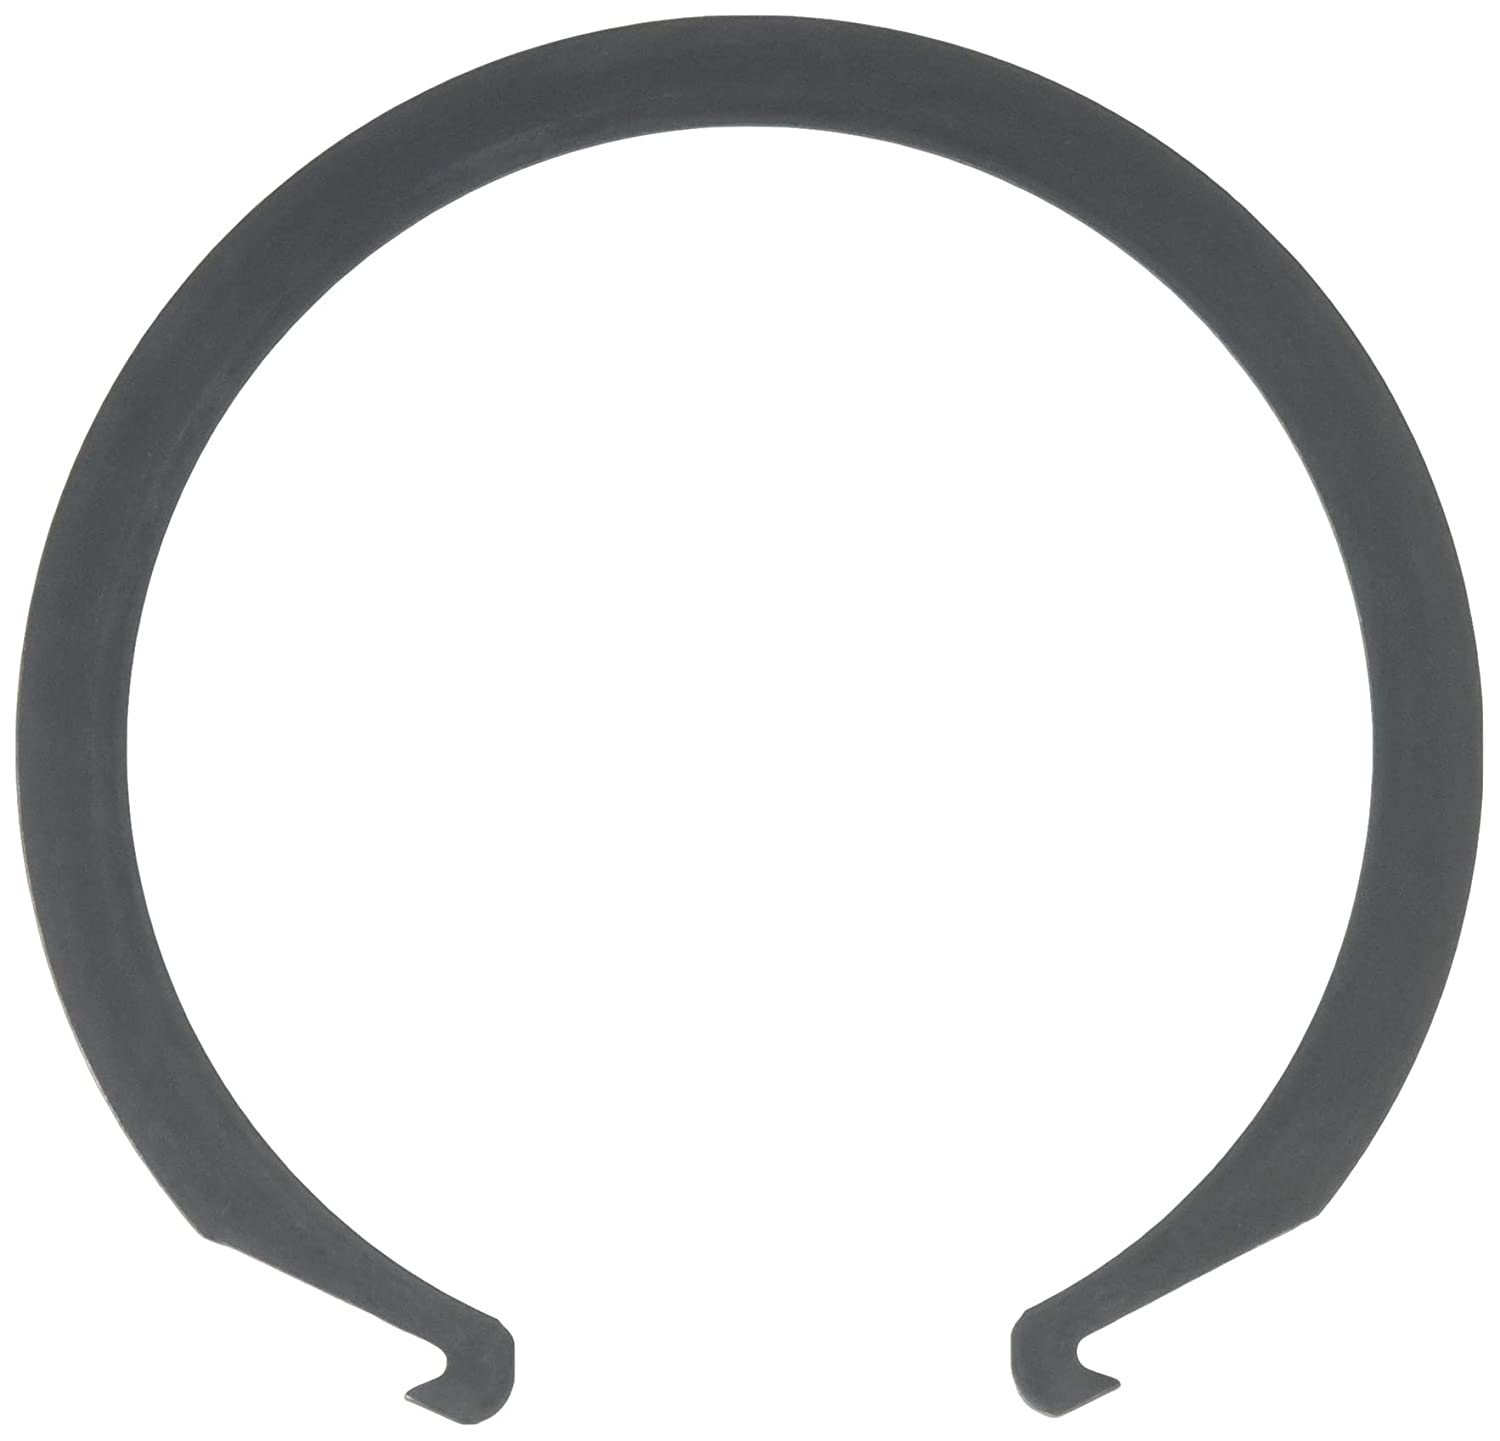 Genuine Hyundai 51718-26500 Snap Ring